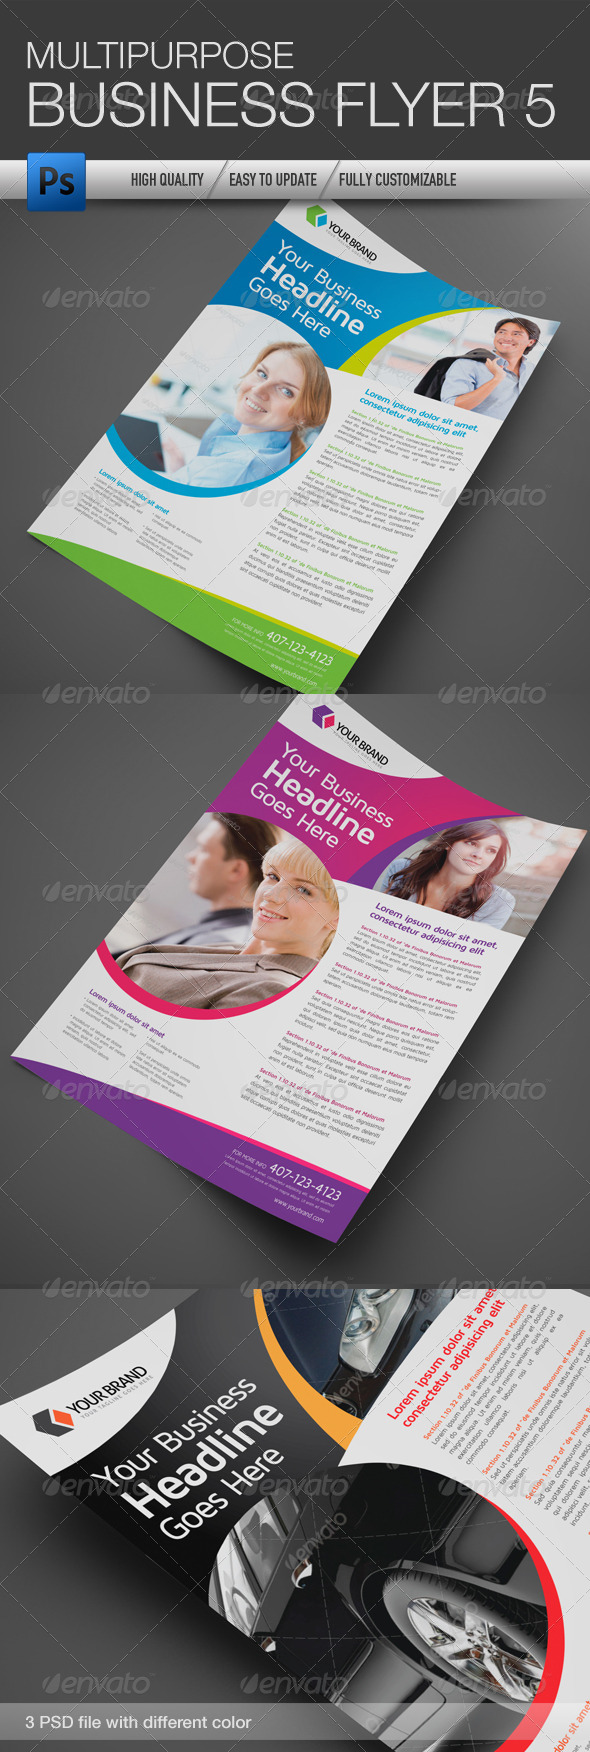 GraphicRiver Multipurpose Business Flyer 5 5055938